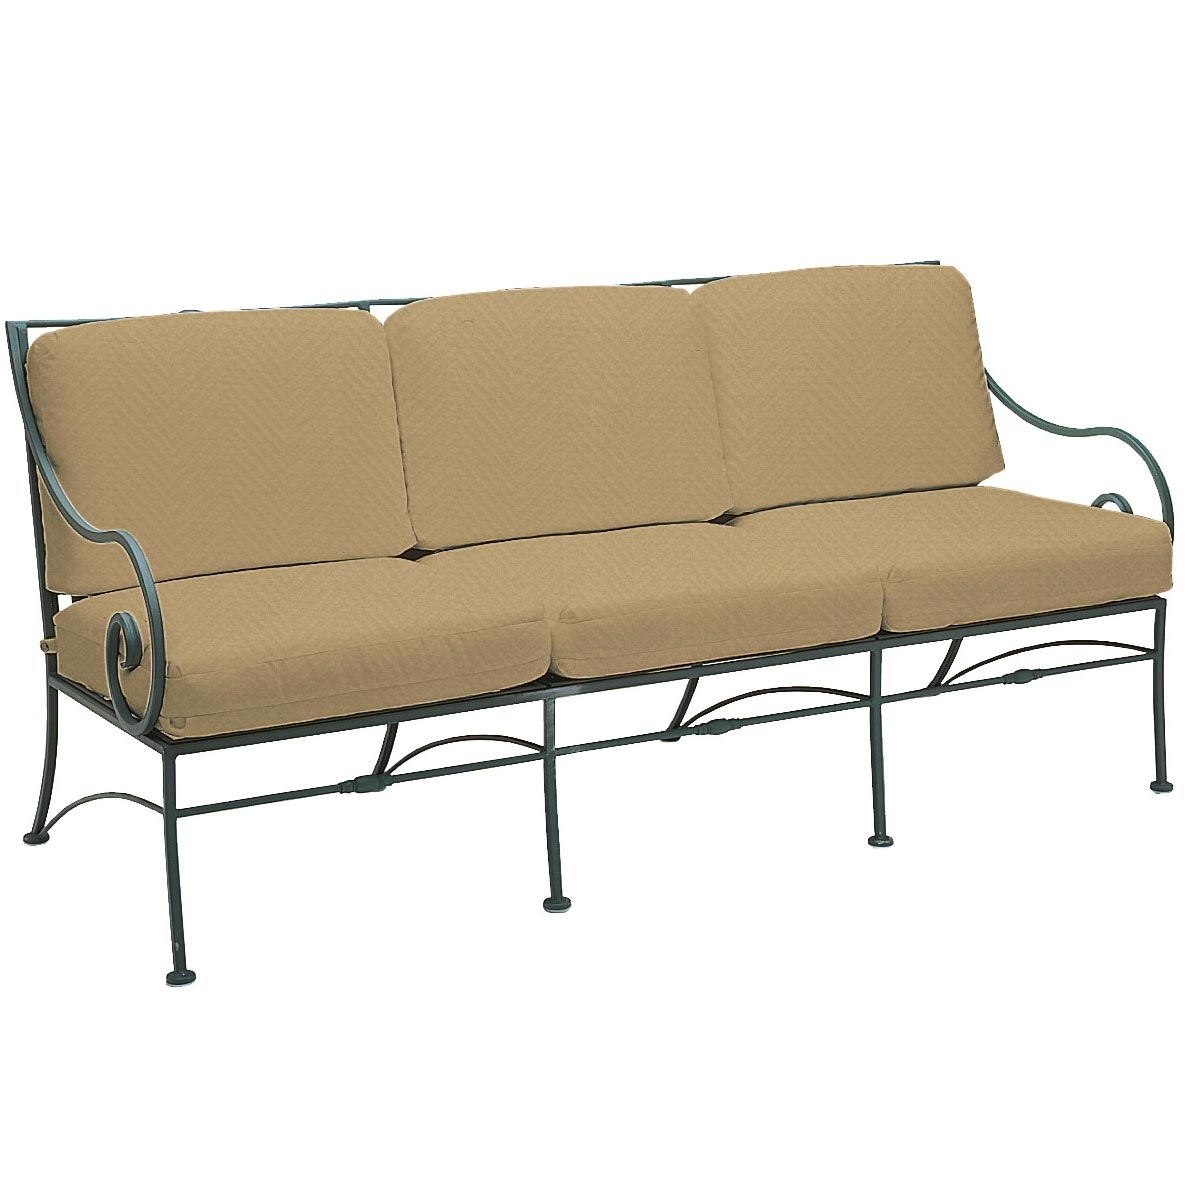 buy the sheffield sofa for your outdoor living area online. Black Bedroom Furniture Sets. Home Design Ideas